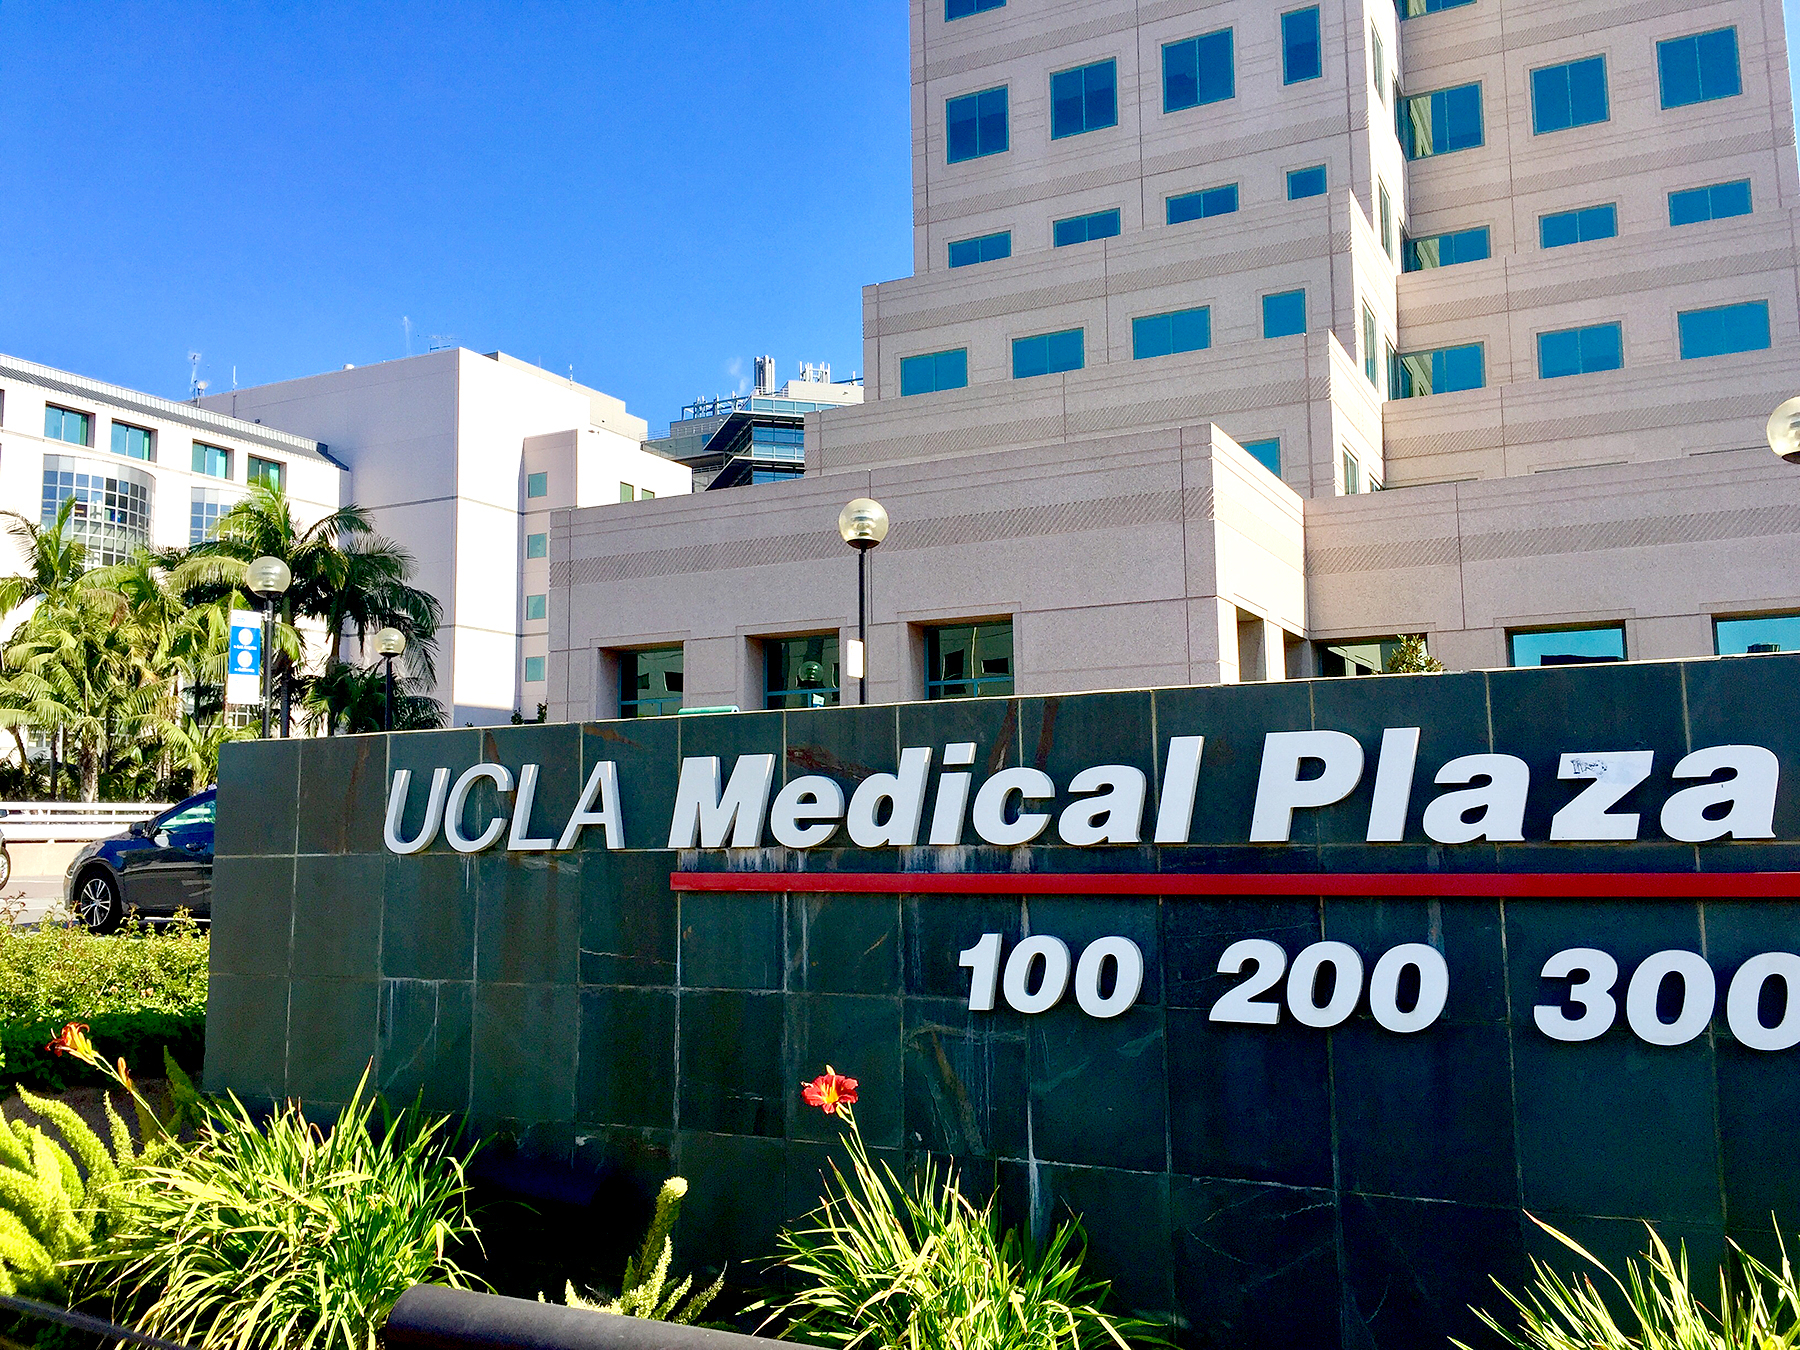 General Views of UCLA Medical Center where Beyonce reportedly gave birth to twins.